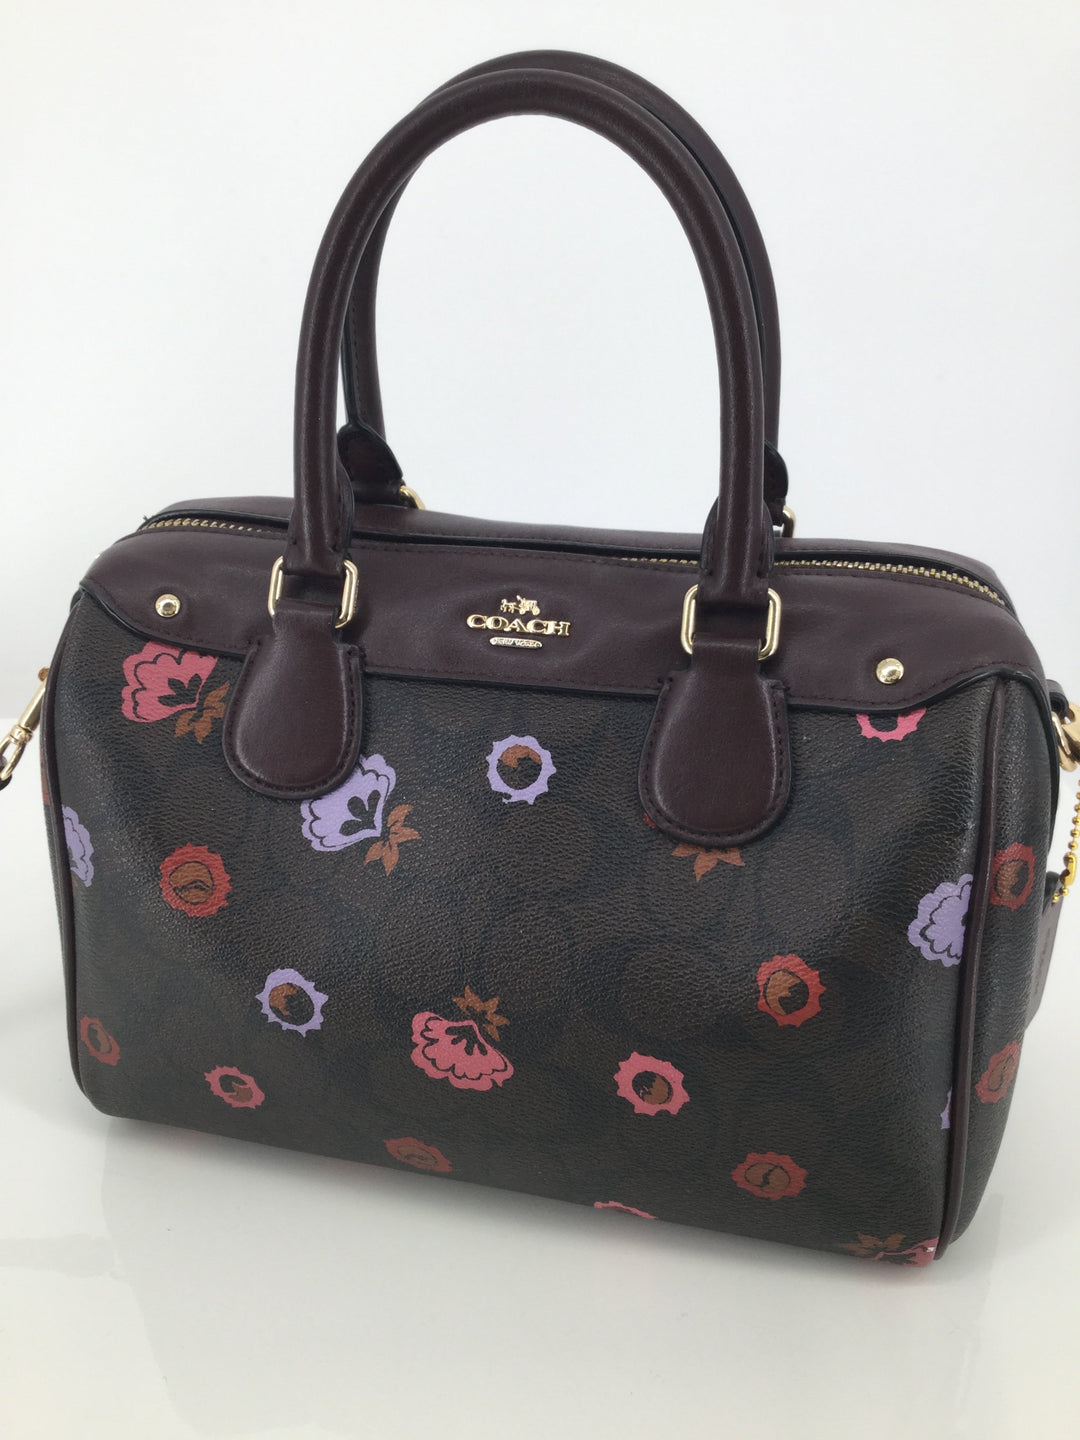 Coach Brown And Burgundy Small Leather Handbag - <P>THIS COACH BAG IS BROWN WITH BURGUNDY AT THE TOP AND ON THE STRAPS. THERE ARE SHOULDER STRAPS AND A REMOVABLE CROSSBODY STRAP. INSIDE, THERE IS A SLIP POCKET AND A ZIPPER POCKET. THIS BAG IS IN GOOD CONDITION WITH VERY LITTLE WEAR (SEE PHOTOS FOR MORE DETAILS).</P>